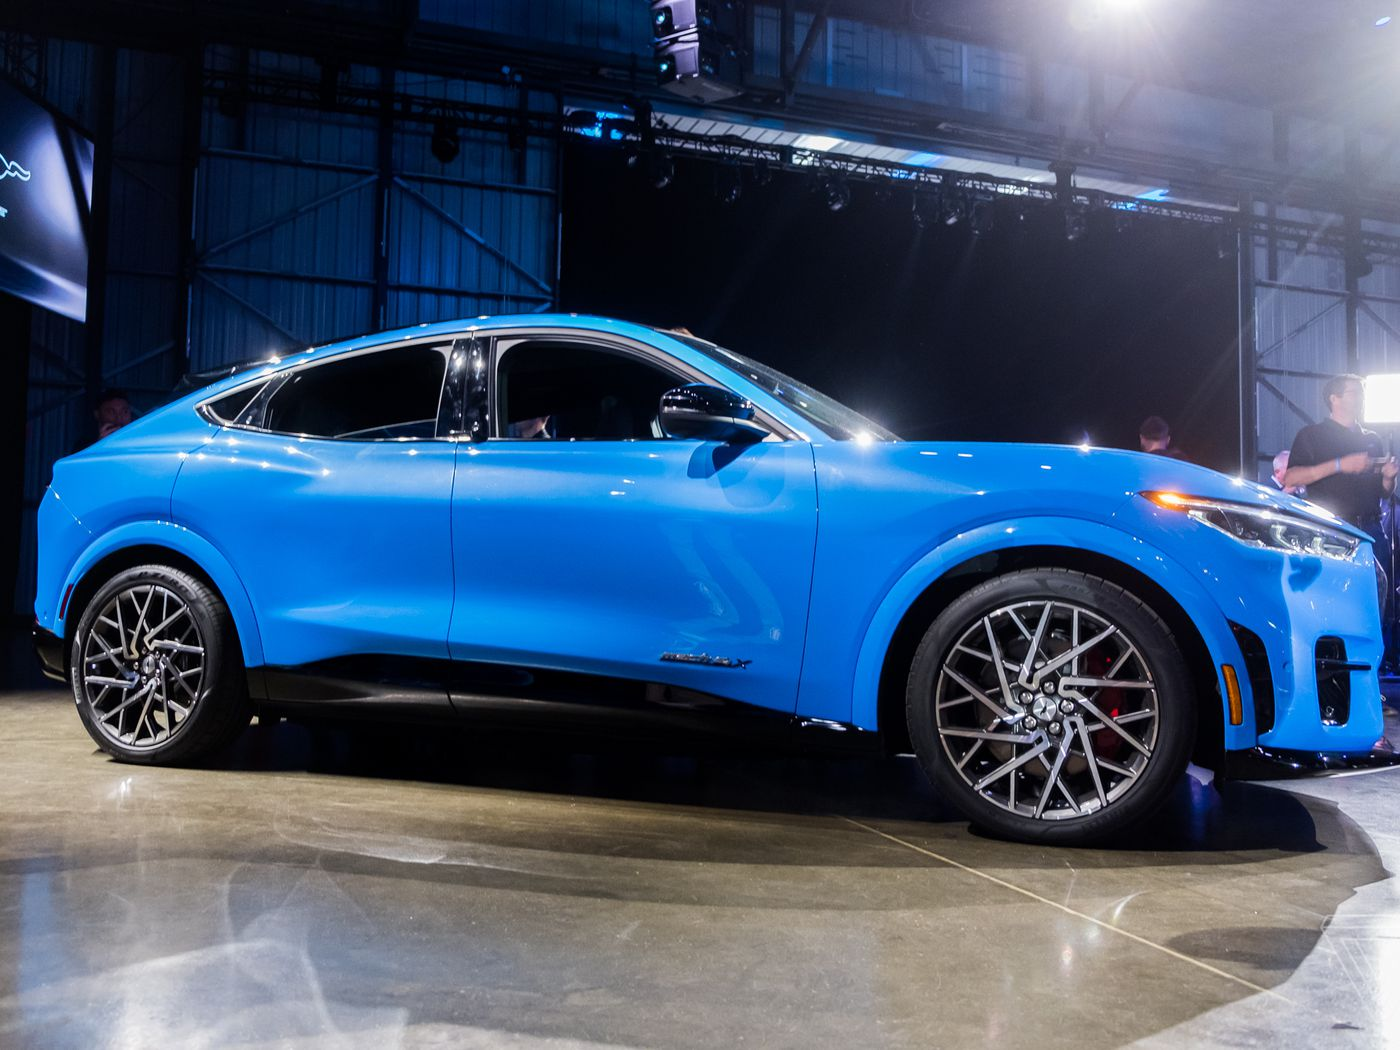 Up Close With Ford S Electric Mustang Suv The Mach E The Verge